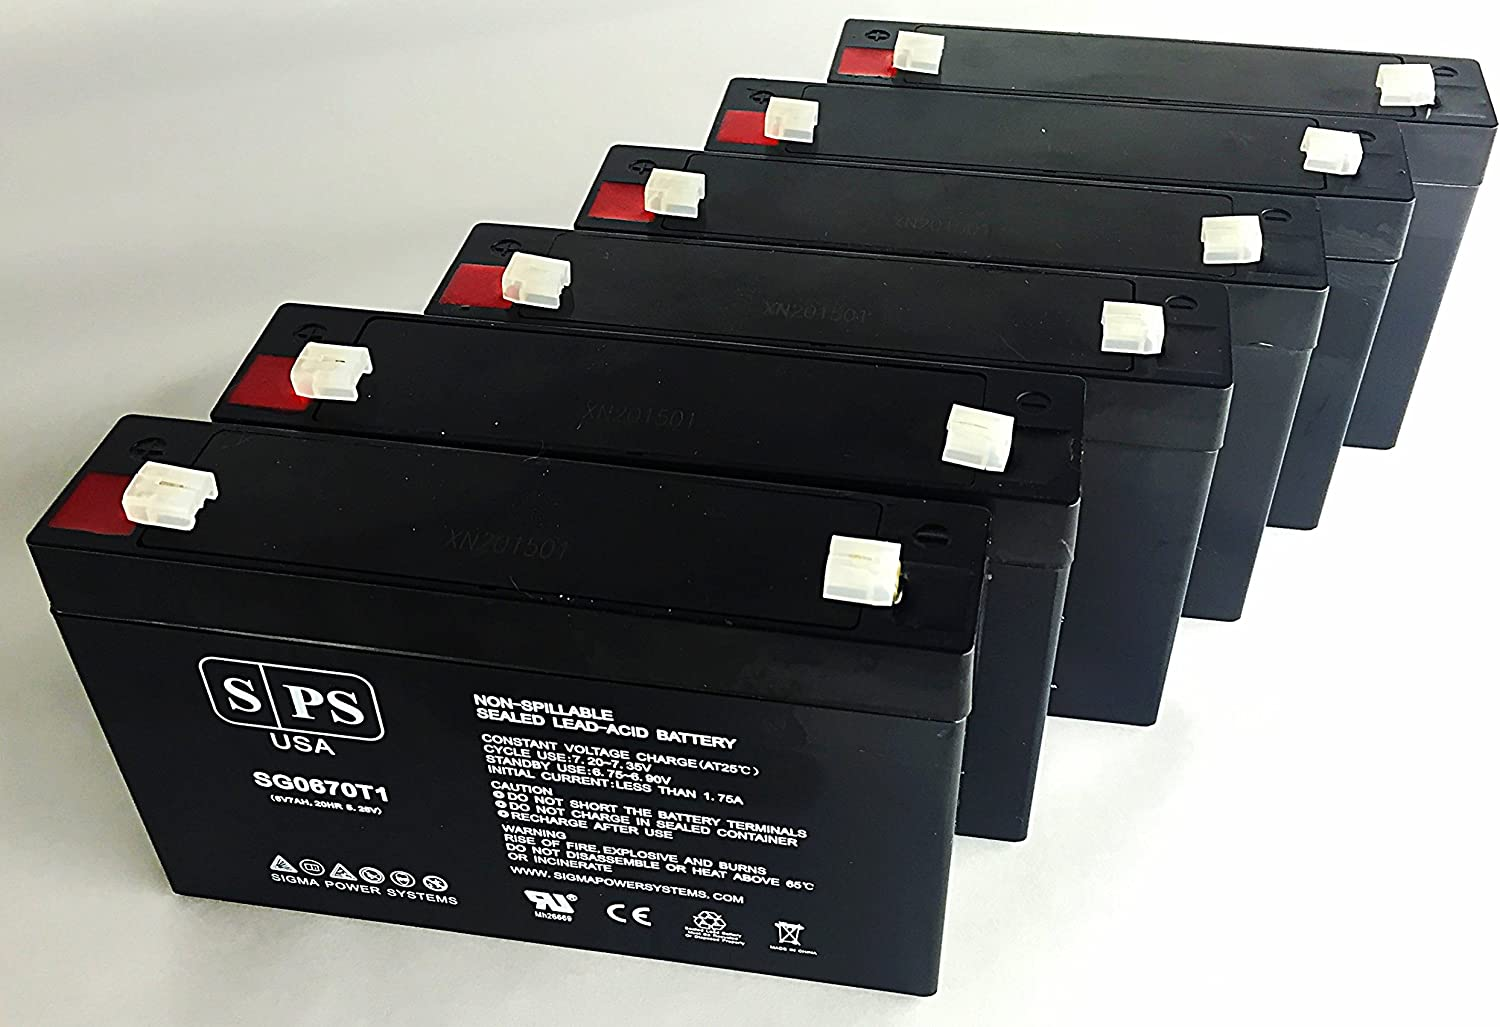 SPS Brand 6V 7Ah Replacement Battery for Volkswagen Beetle Model # W486TG-F 6 Pack